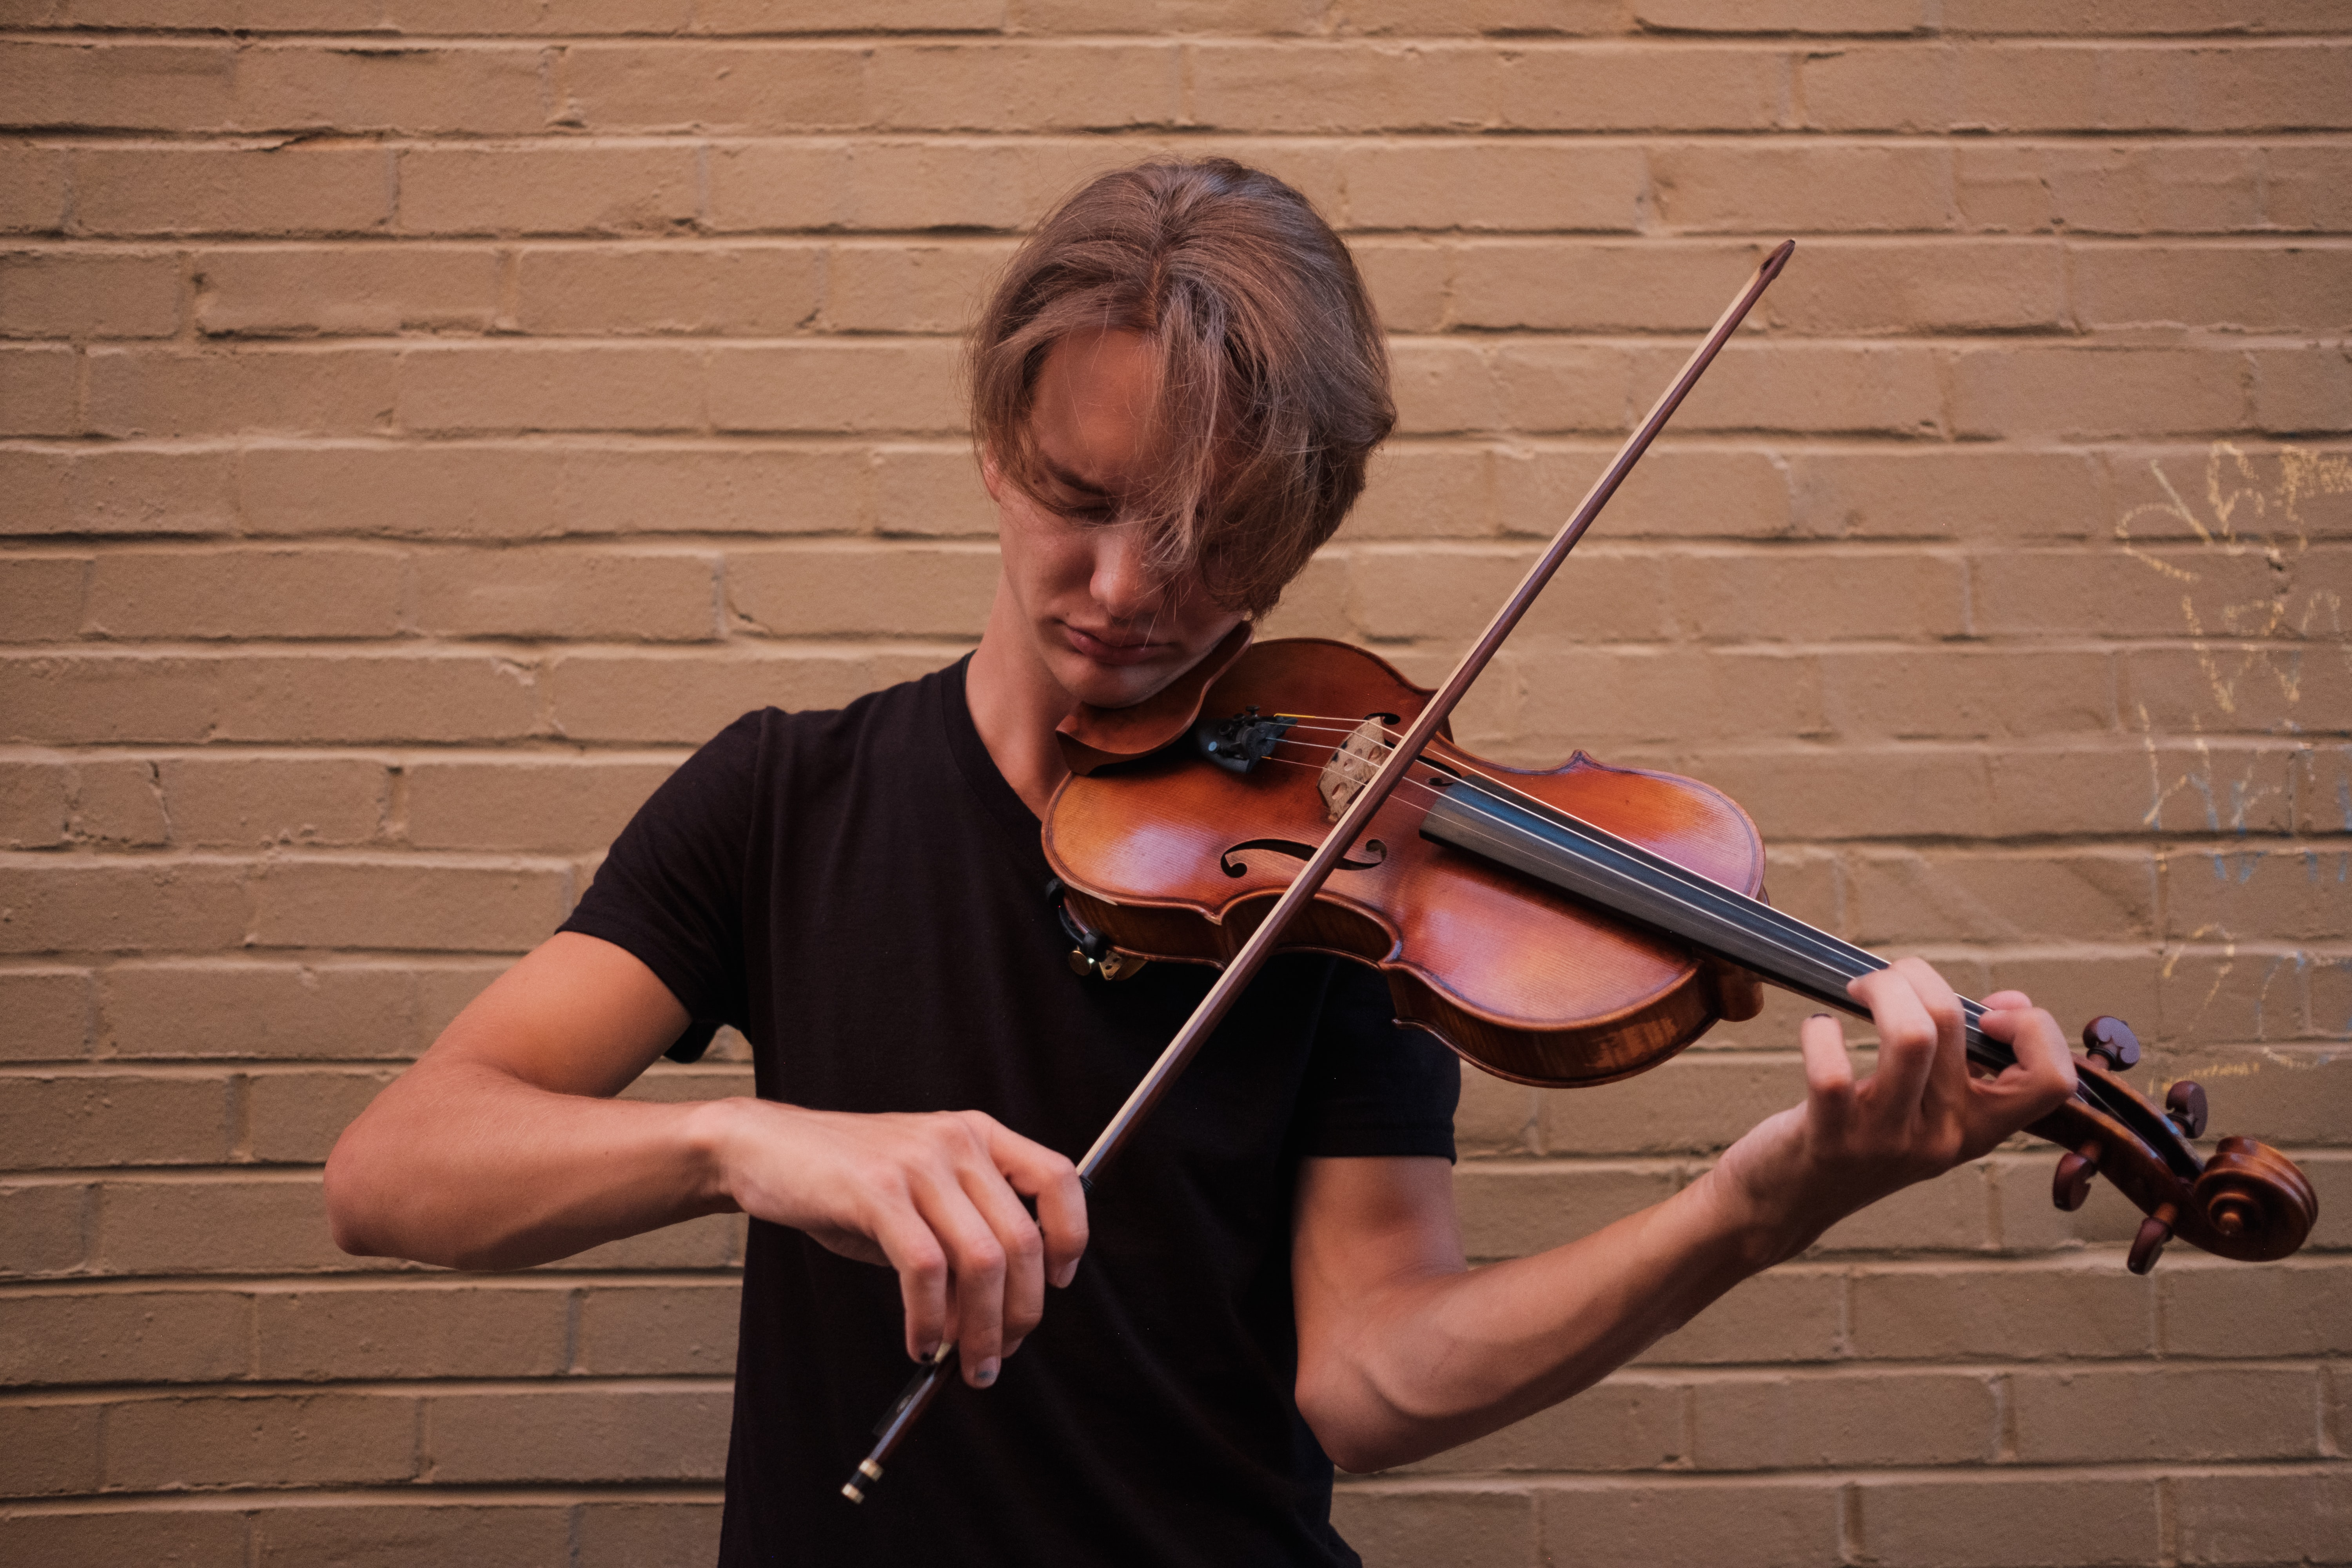 violin lessons for kids and adults near me in rapid city sd